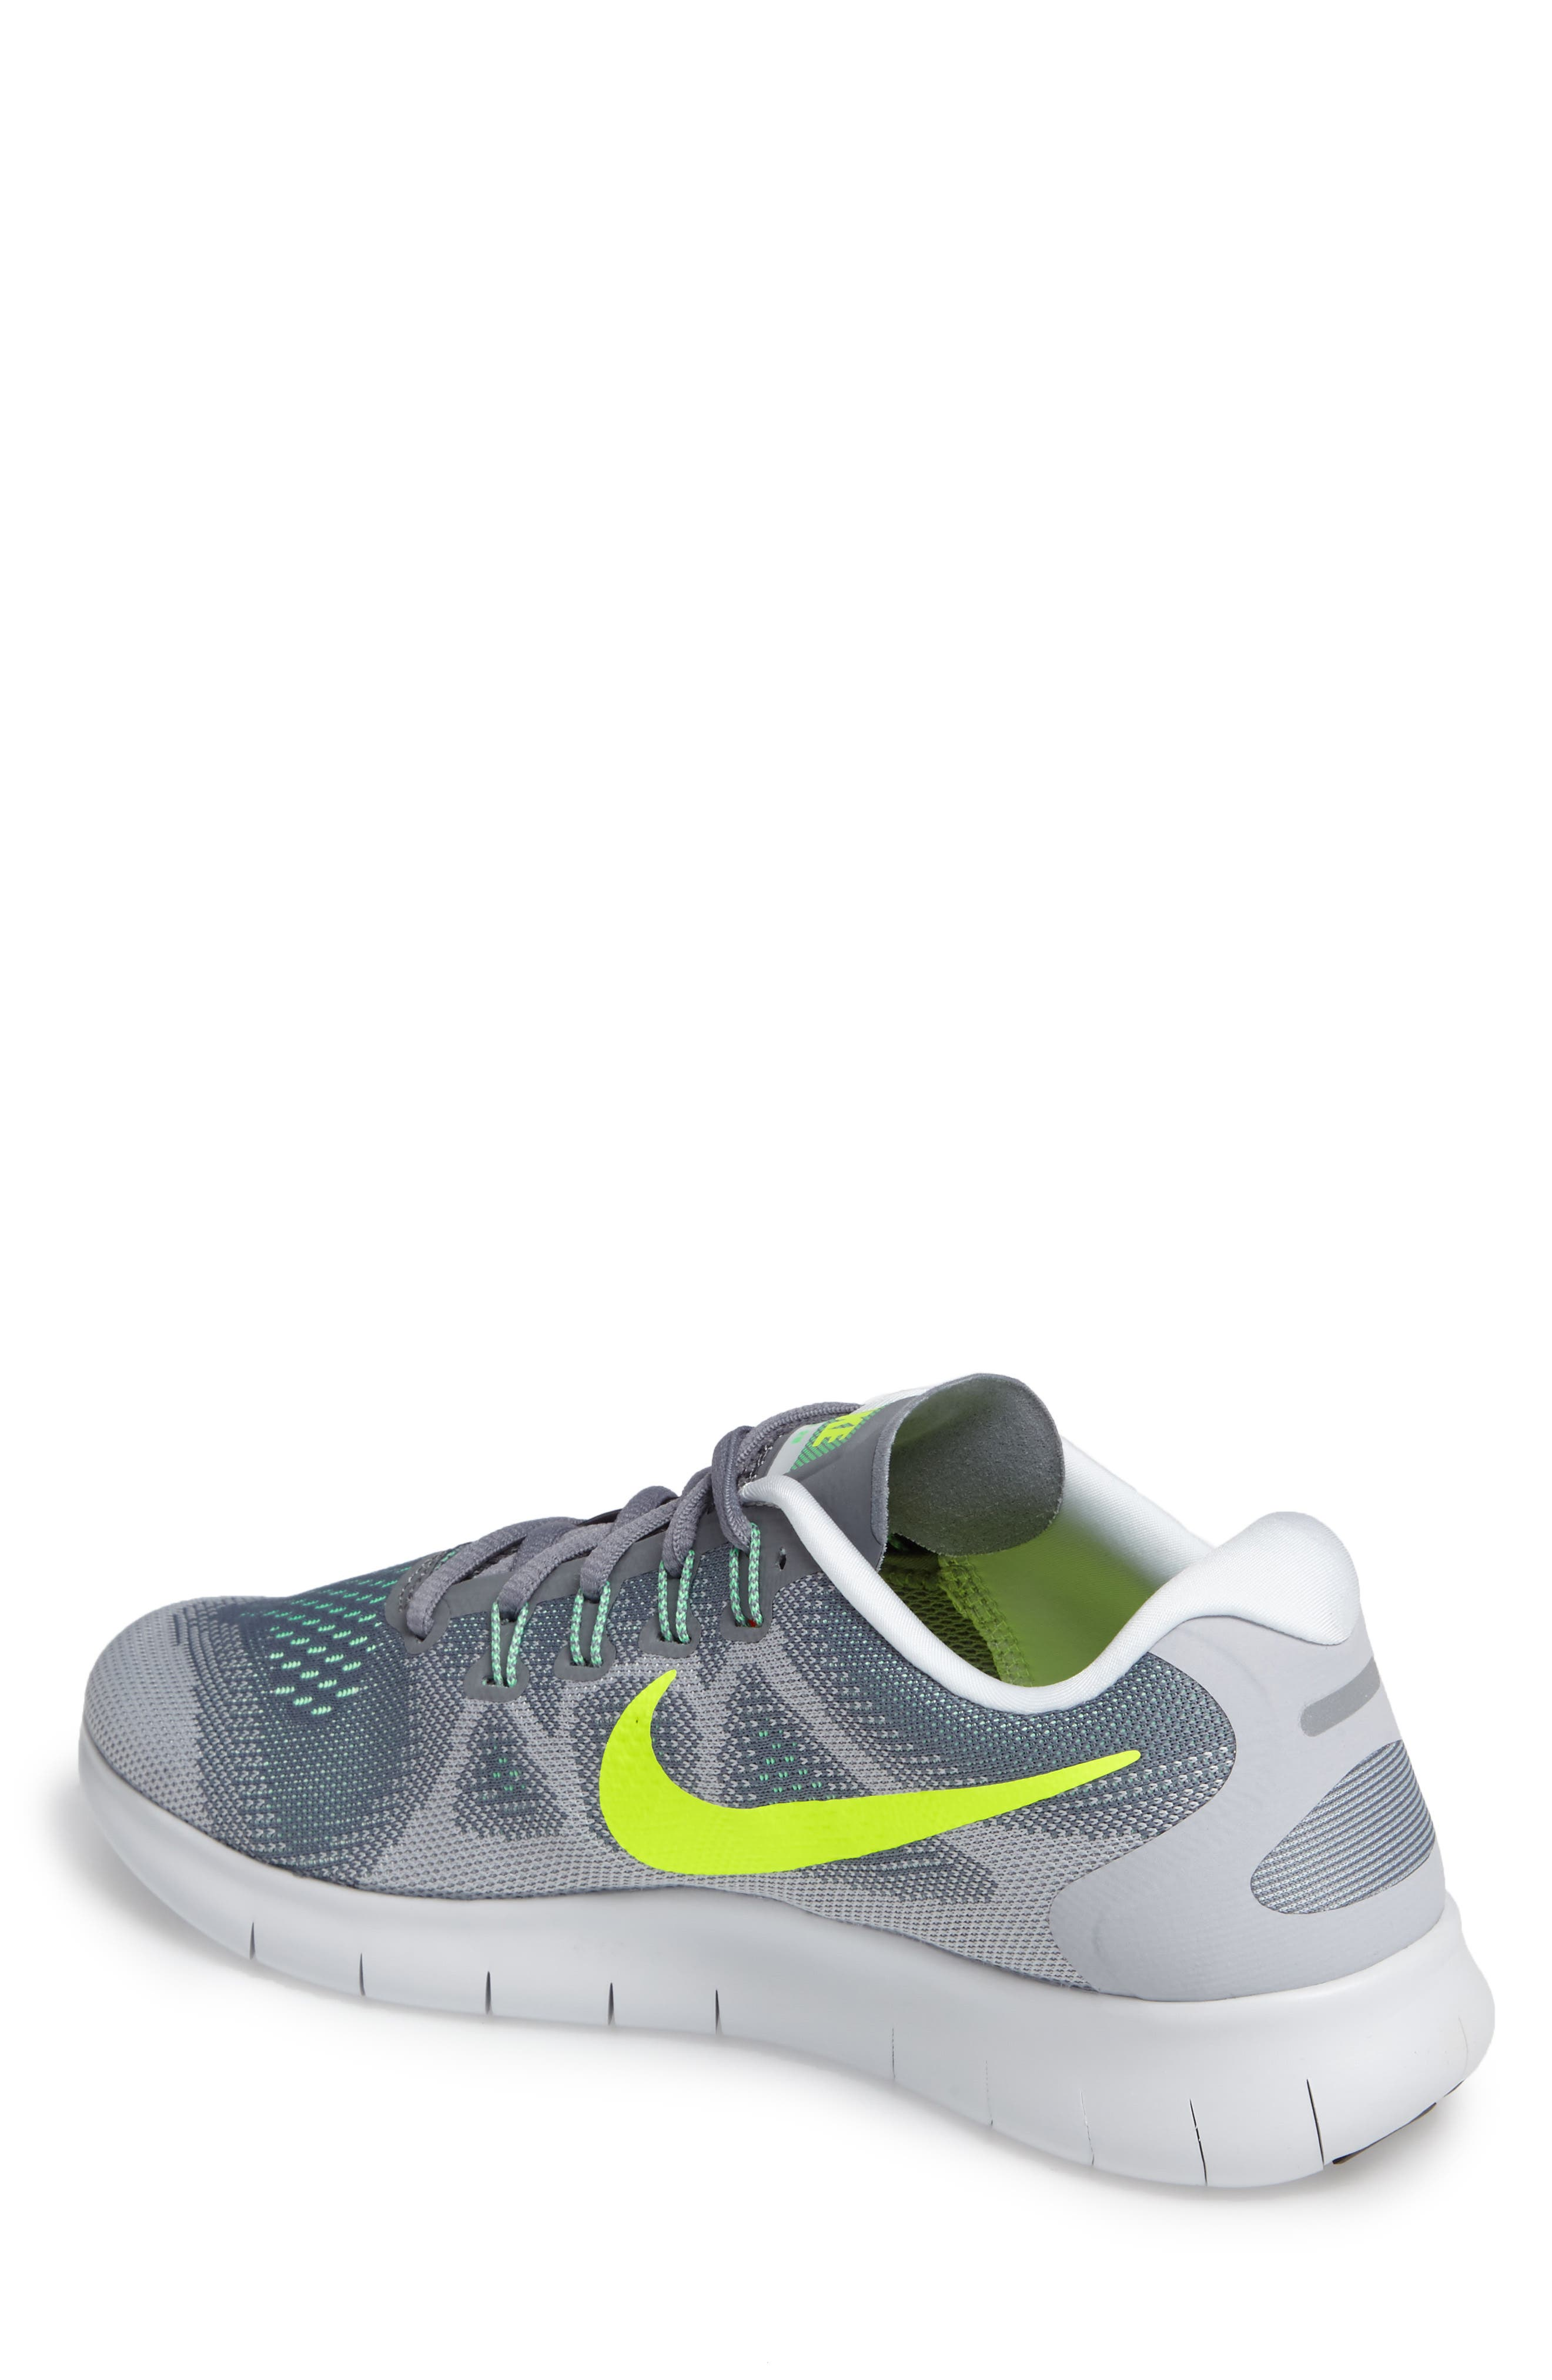 Free Run 2017 Running Shoe,                             Alternate thumbnail 2, color,                             Grey/ Volt/ Grey/ Green